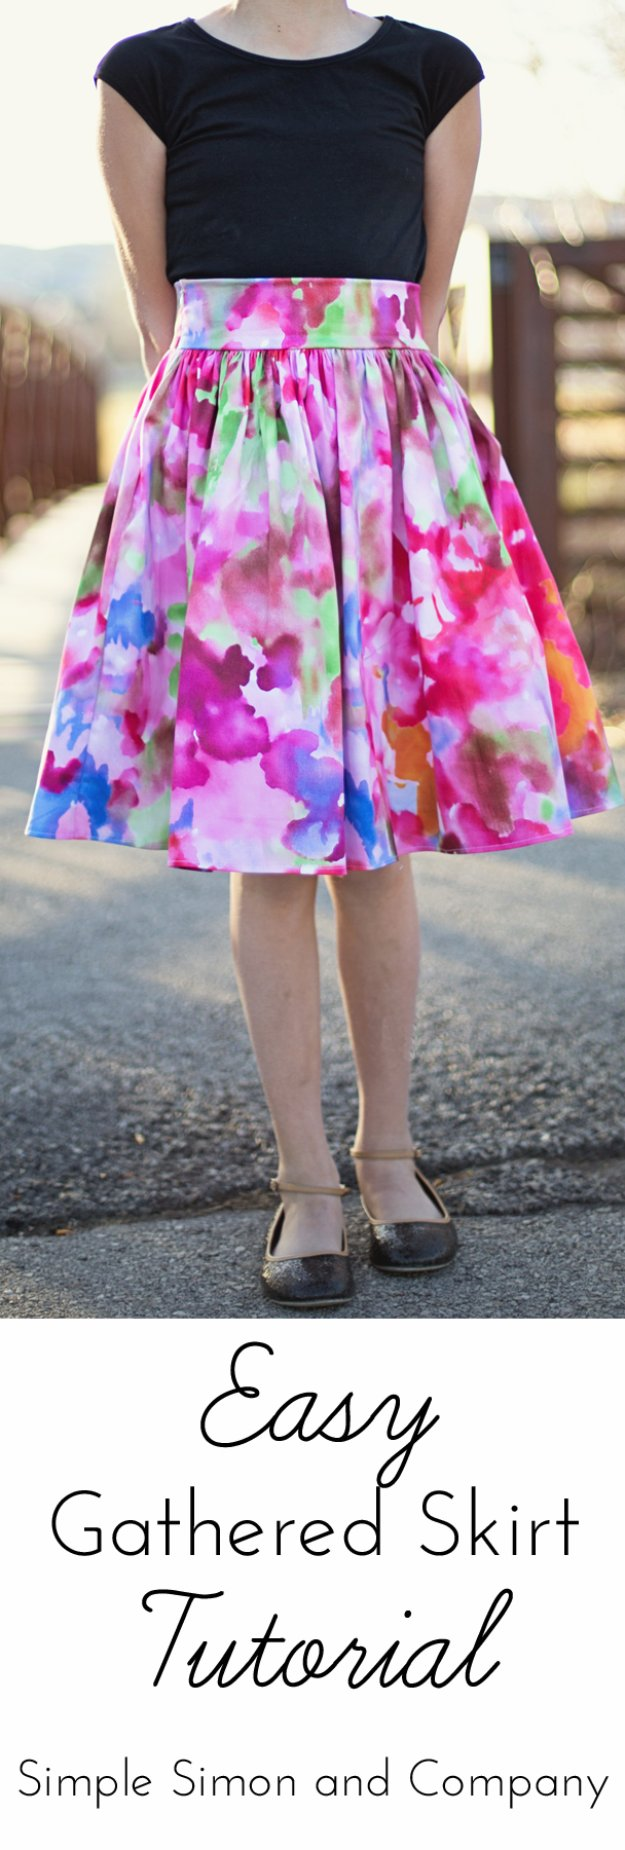 DIY Sewing Projects for Women - Easy Gathered Skirt Tutorial - How to Sew Dresses, Blouses, Pants, Tops and Fashion. Step by Step Tutorials and Instructions #sewing #fashion